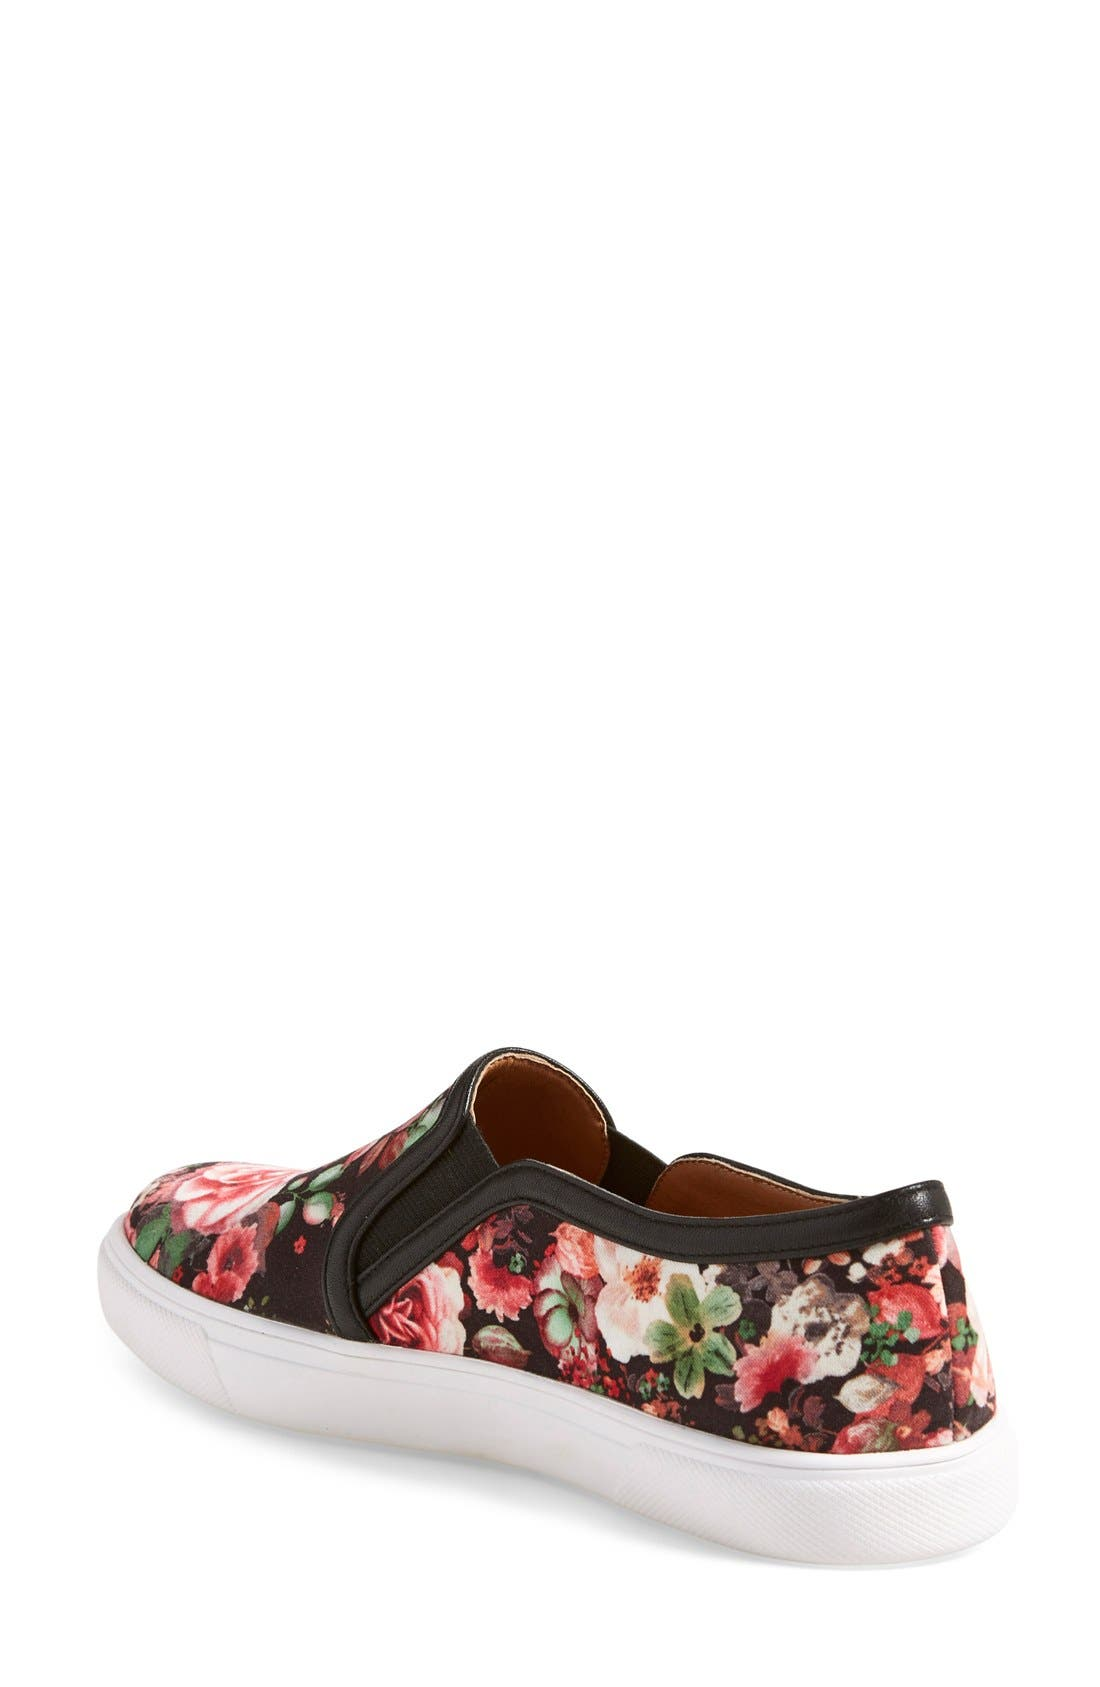 'Turner' Slip-On Sneaker,                             Alternate thumbnail 2, color,                             Rose Floral